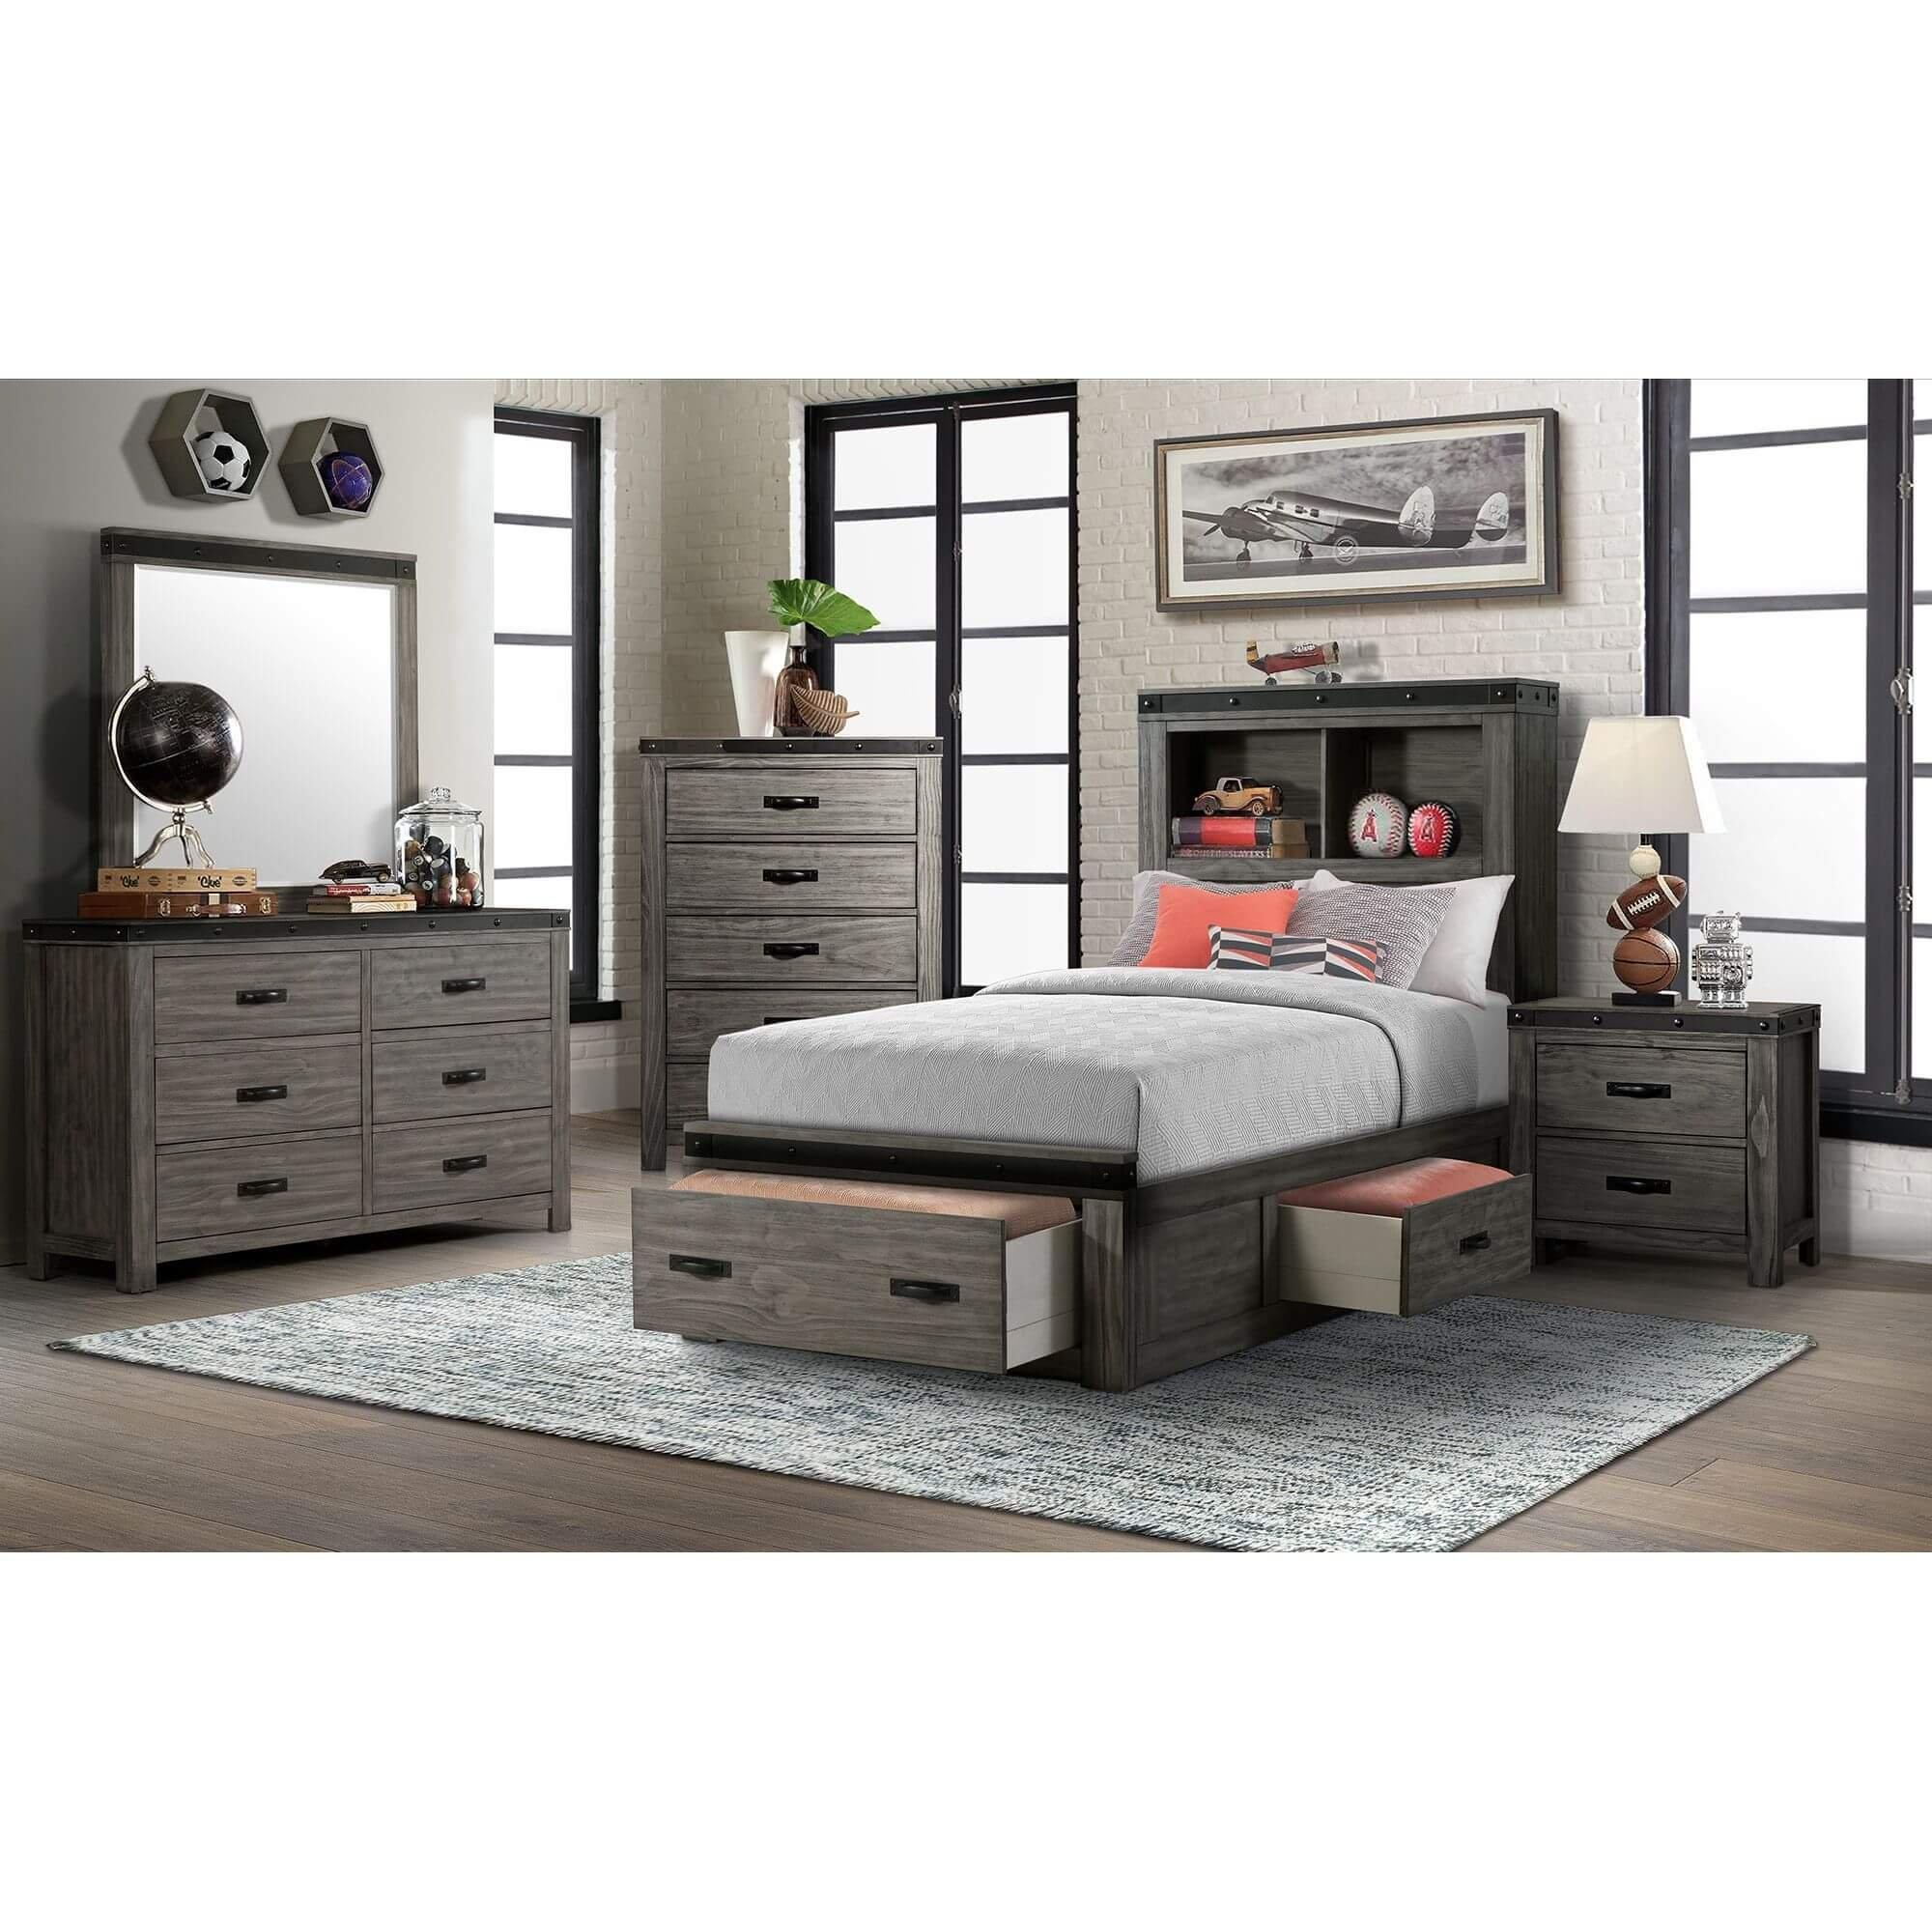 Rent To Own Elements International 6 Piece Wade Twin Bedroom Set At Aaron S Today